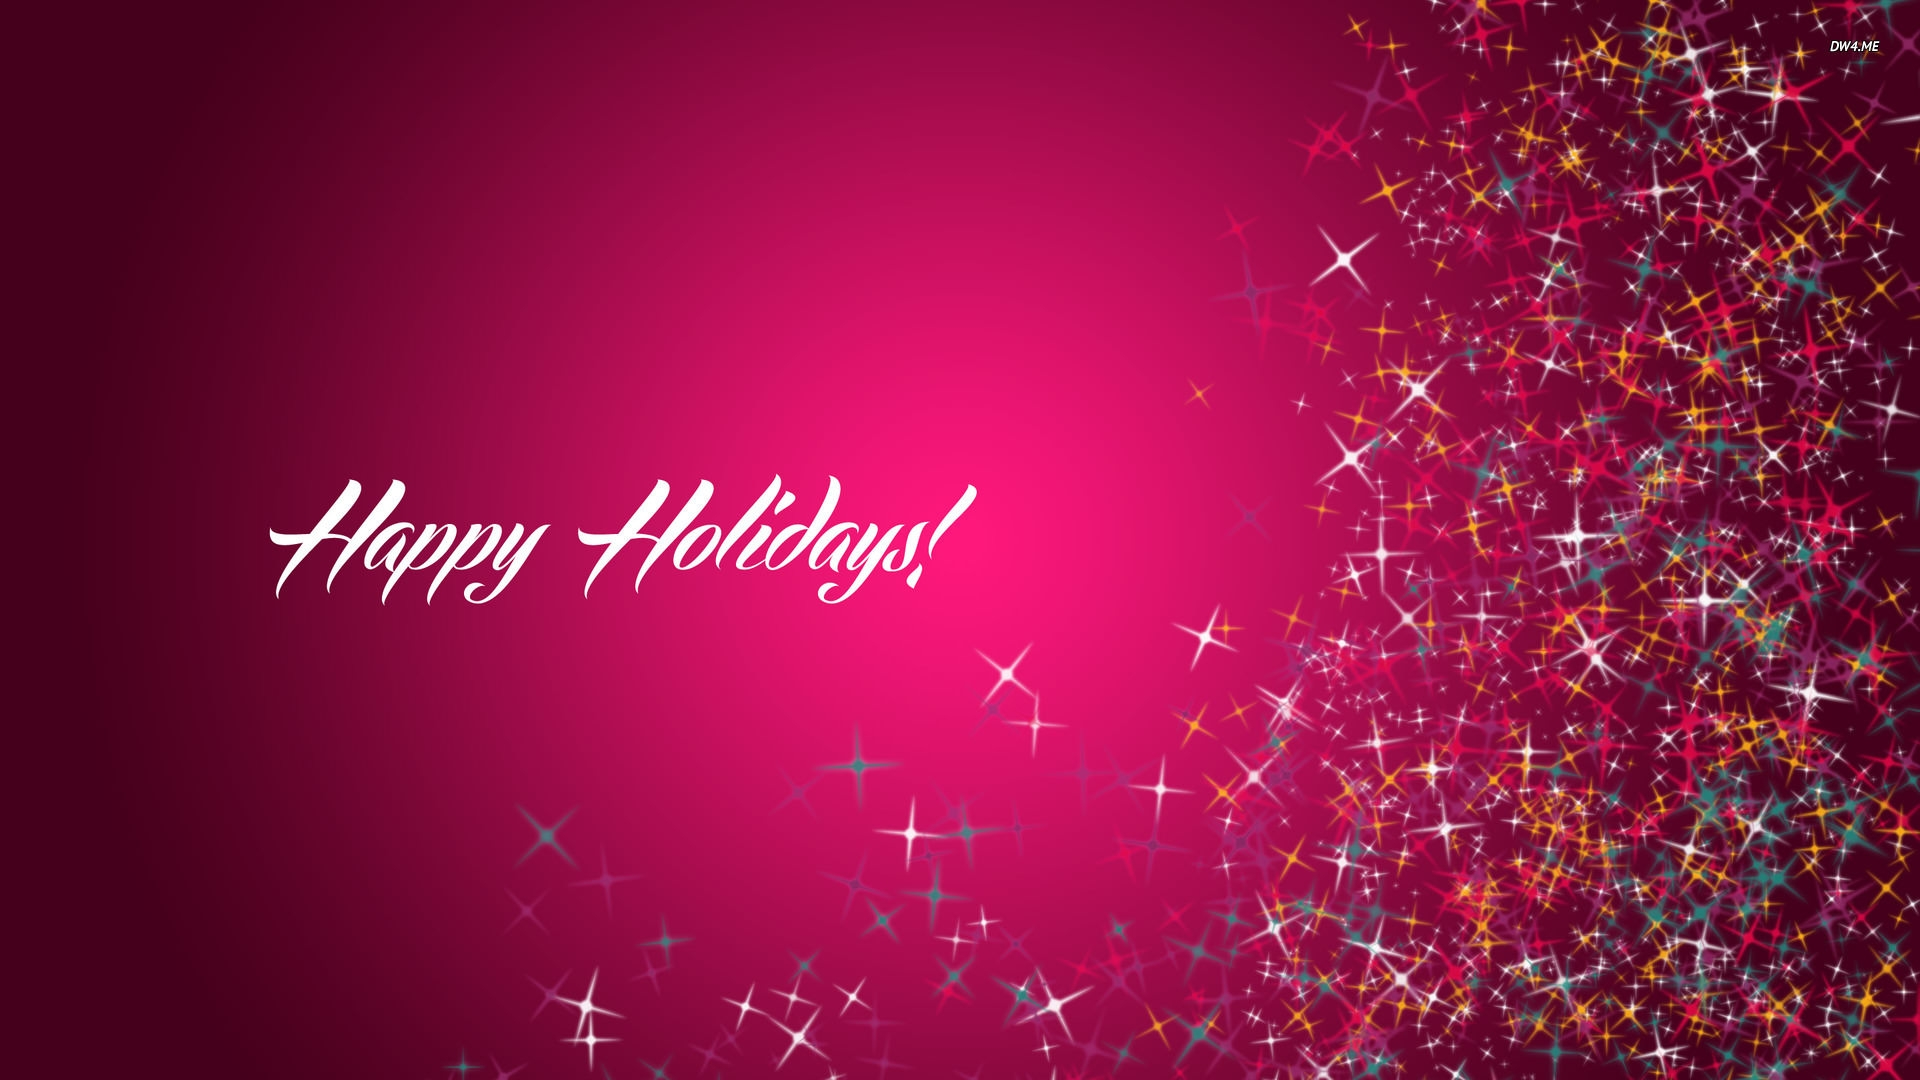 22 holiday wallpapers backgrounds images freecreatives